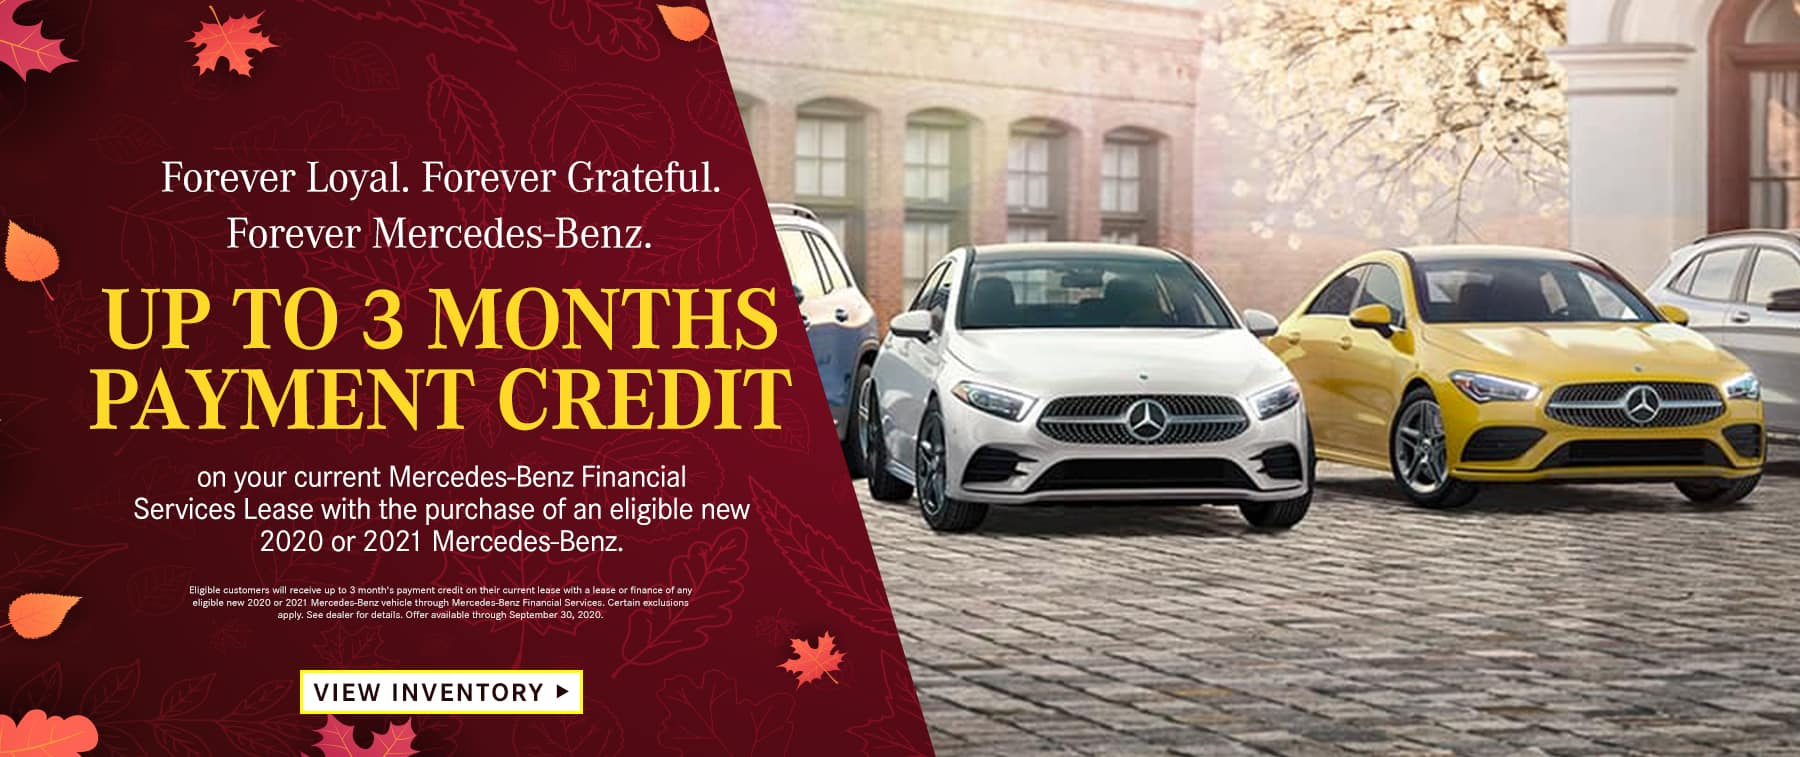 Up to 3 Months Payment Credit